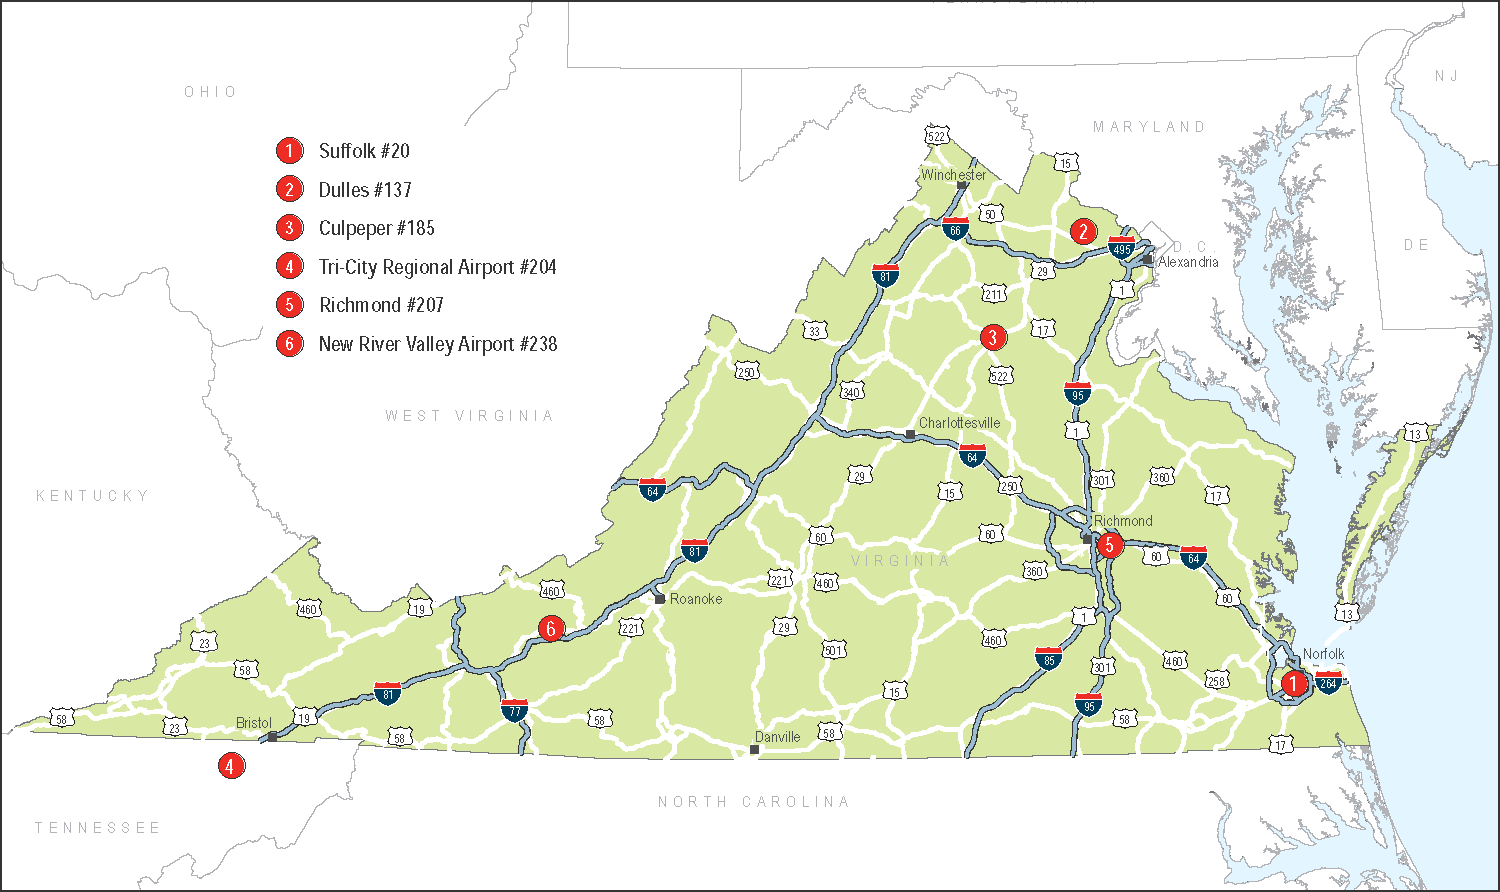 Infrastructure 5. Richmond FTZ #207. Central Virginia s zone is located at Richmond International Airport.